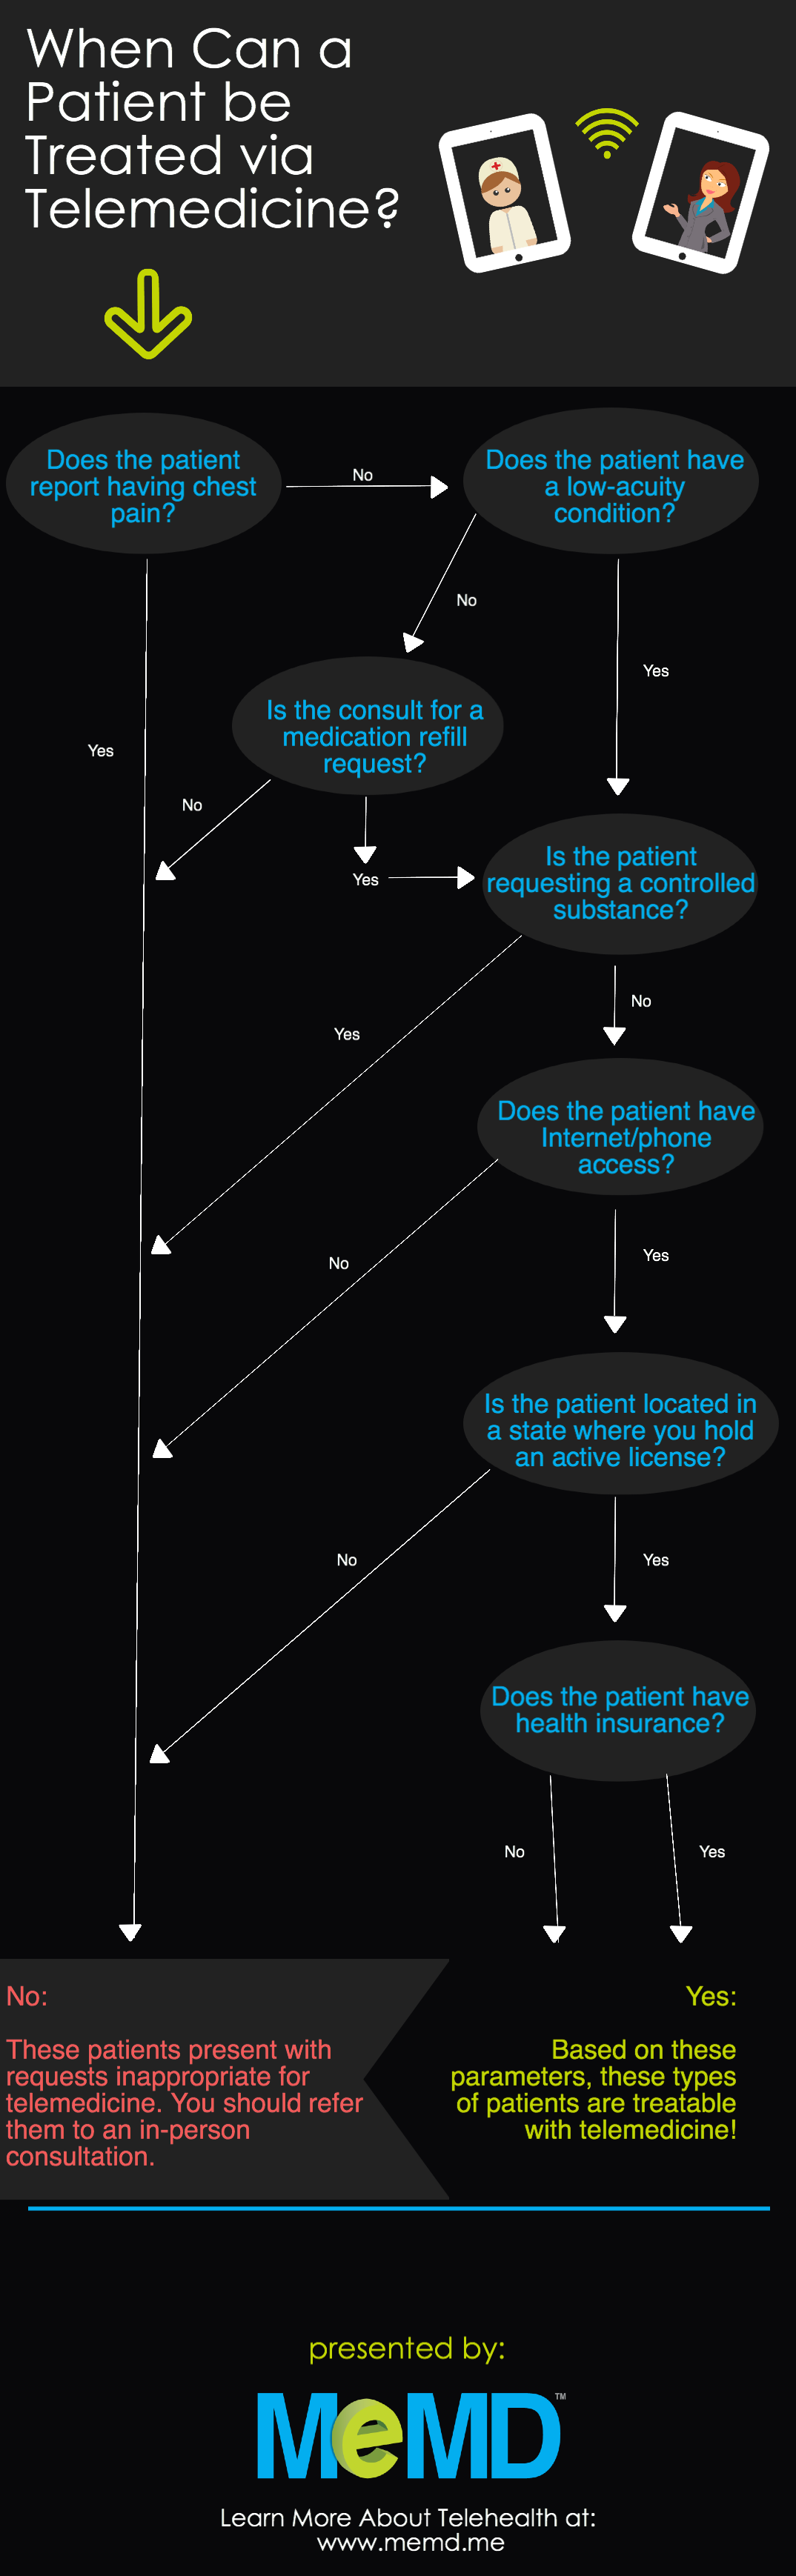 Can I Treat this Patient via Telemedicine? (Infographic ...